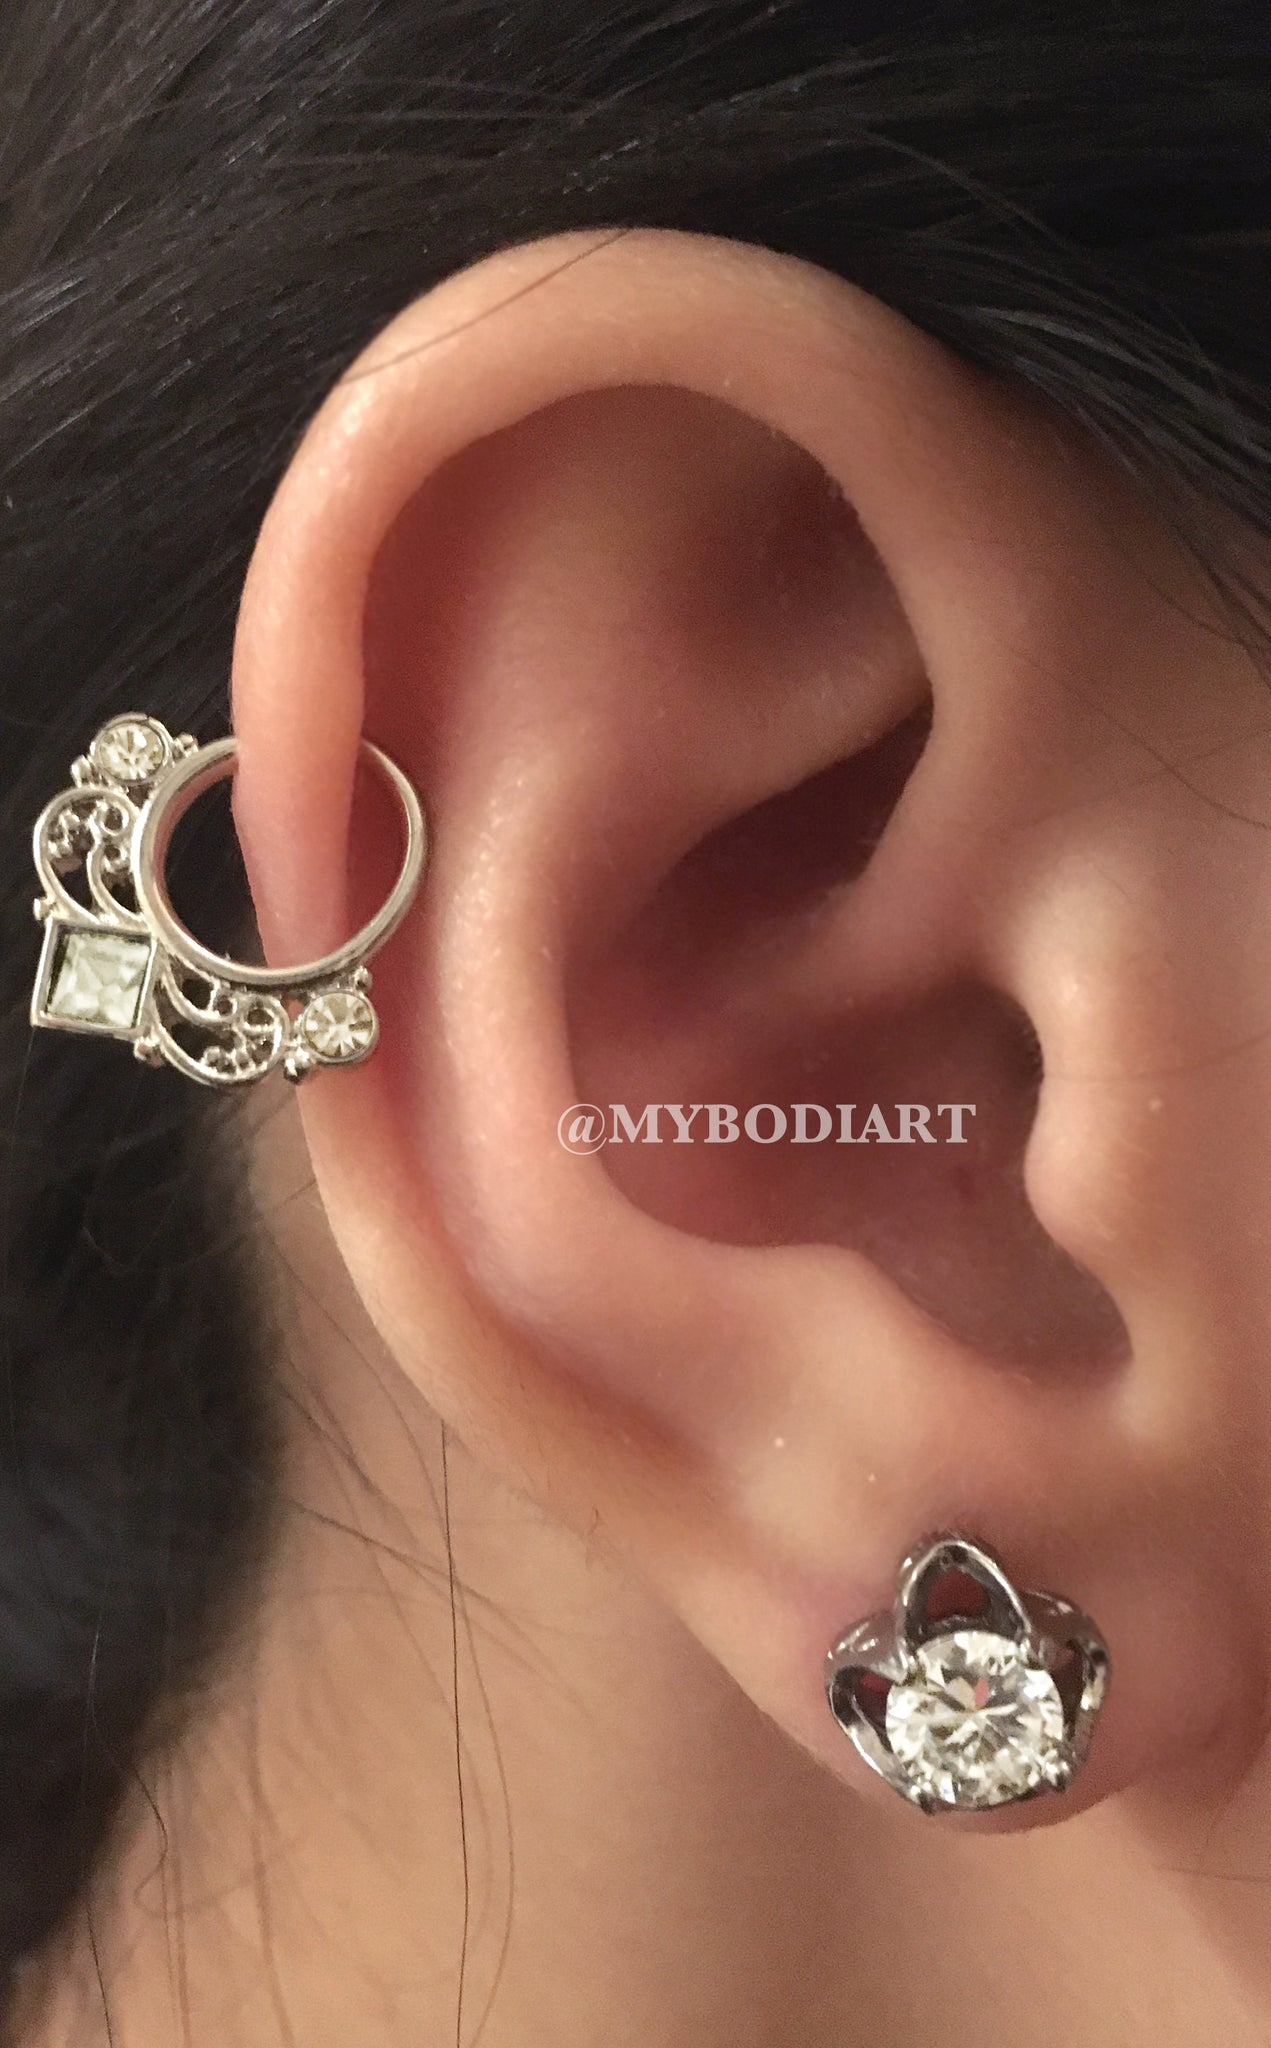 Cartilage Ear Piercing Ideas - Silver Ring Hoop Crystal Lobe Earring Stud - www.MyBodiArt.com